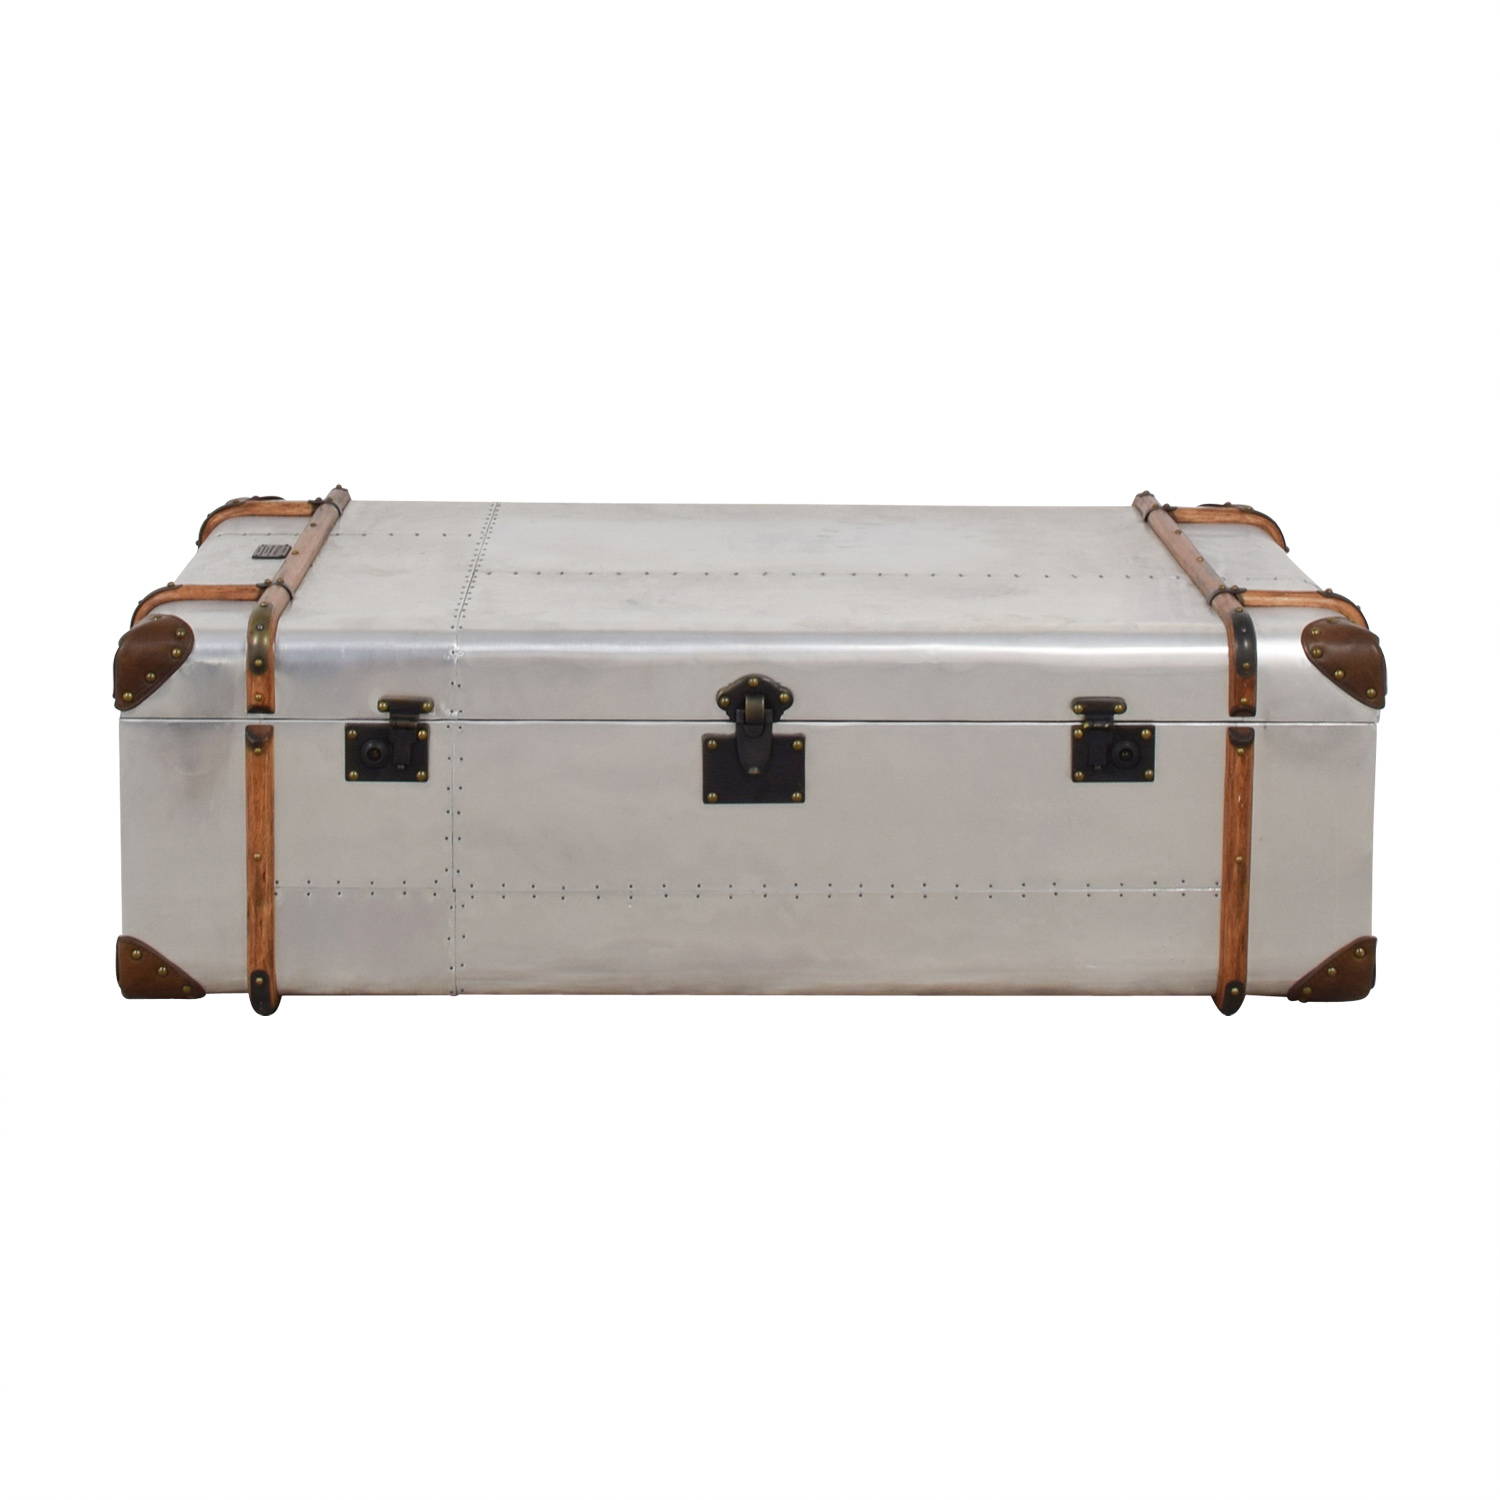 Restoration Hardware Restoration Hardware Richard Trunk Metal and Leather Coffee Table on sale